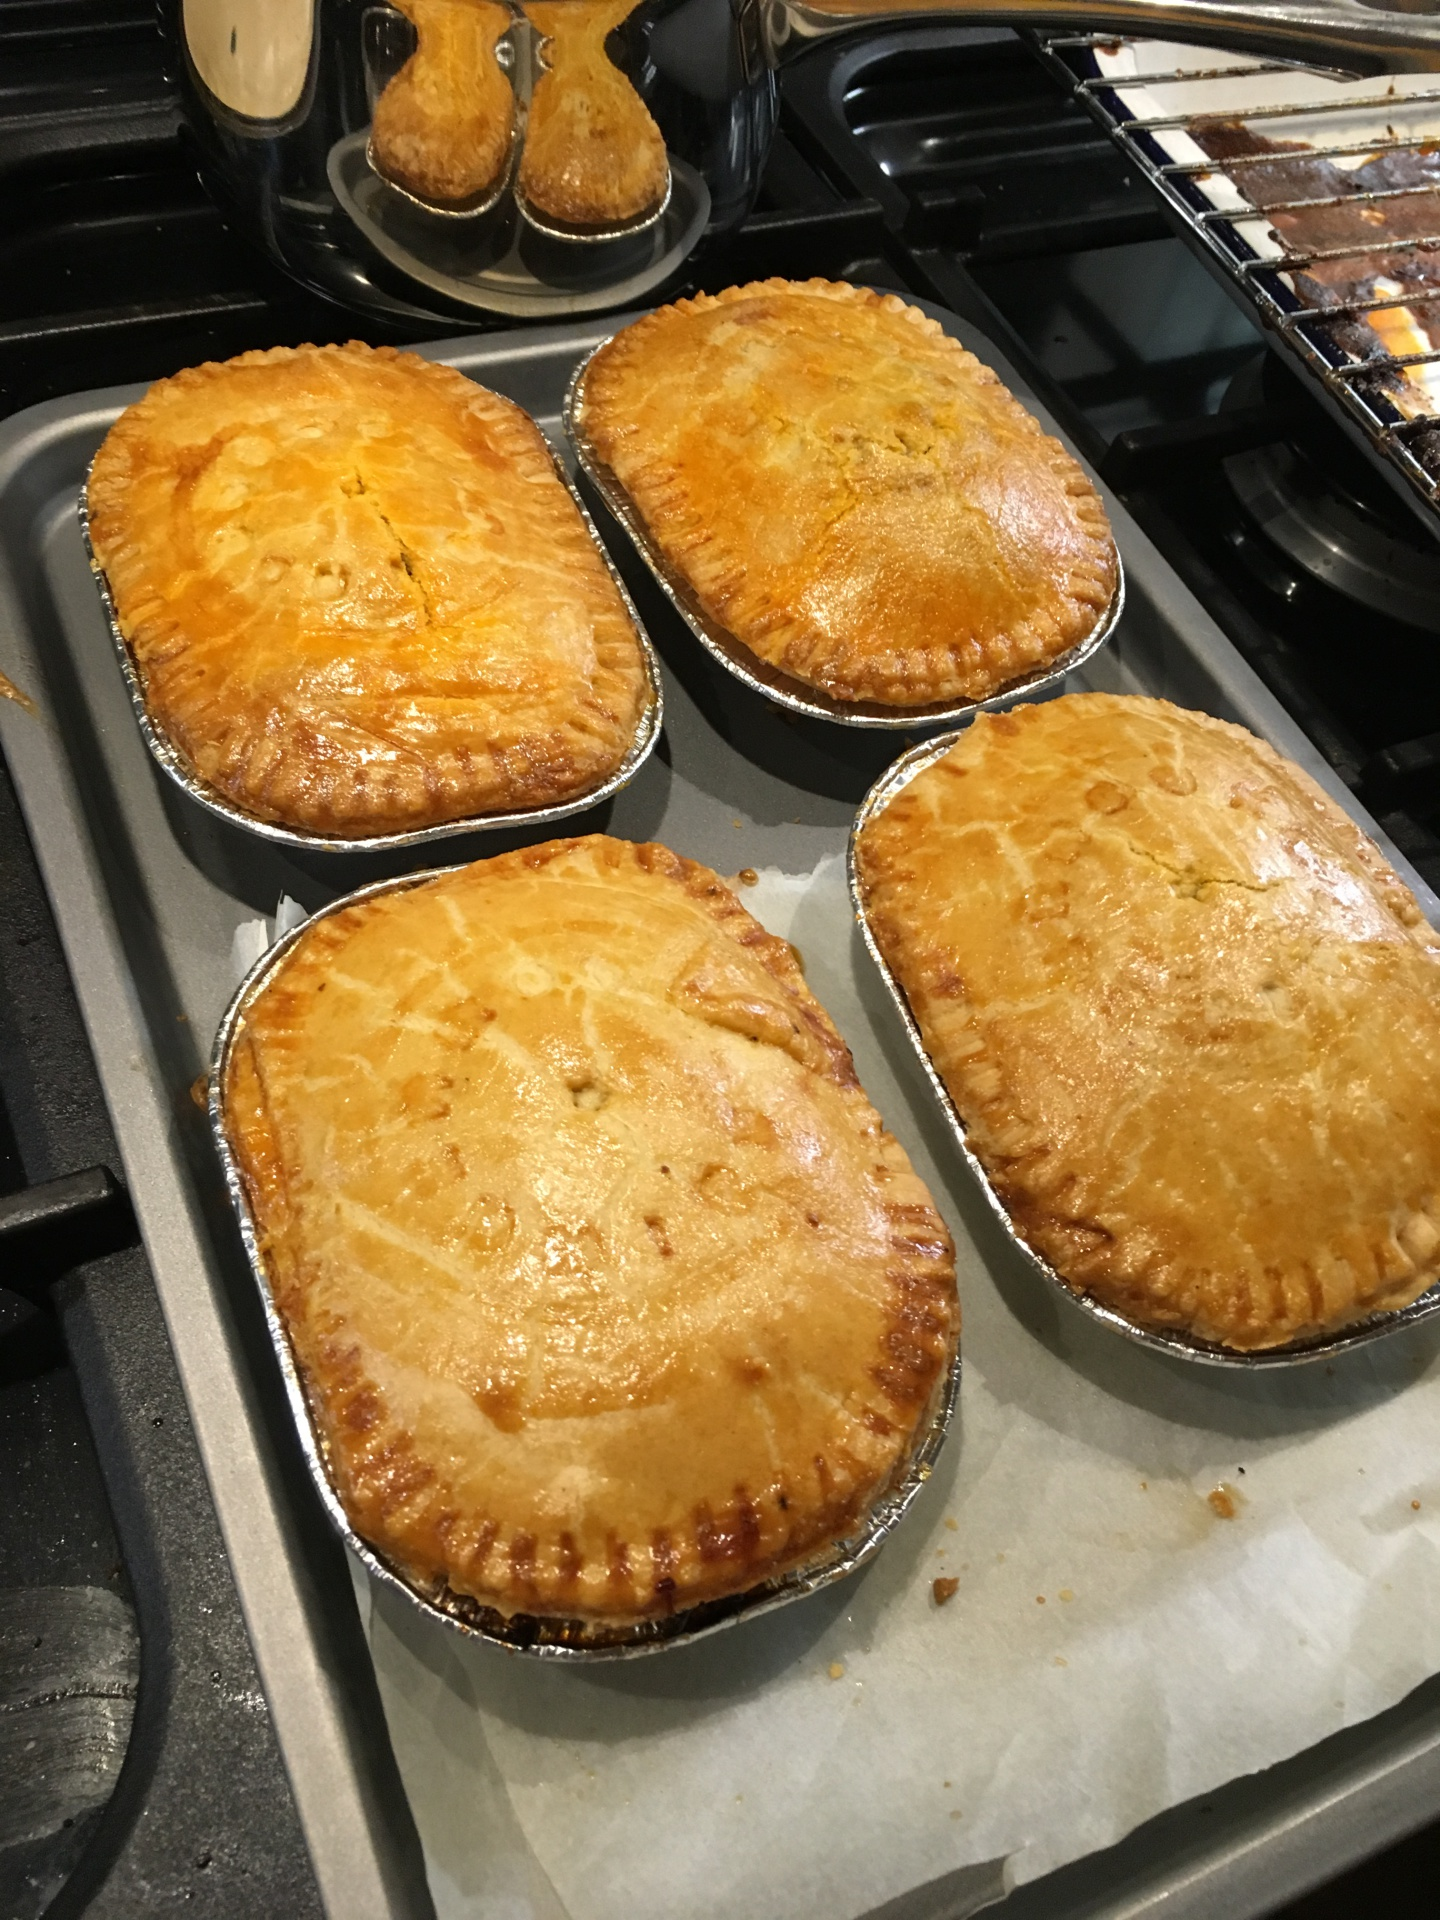 Golden and Crisp Pies